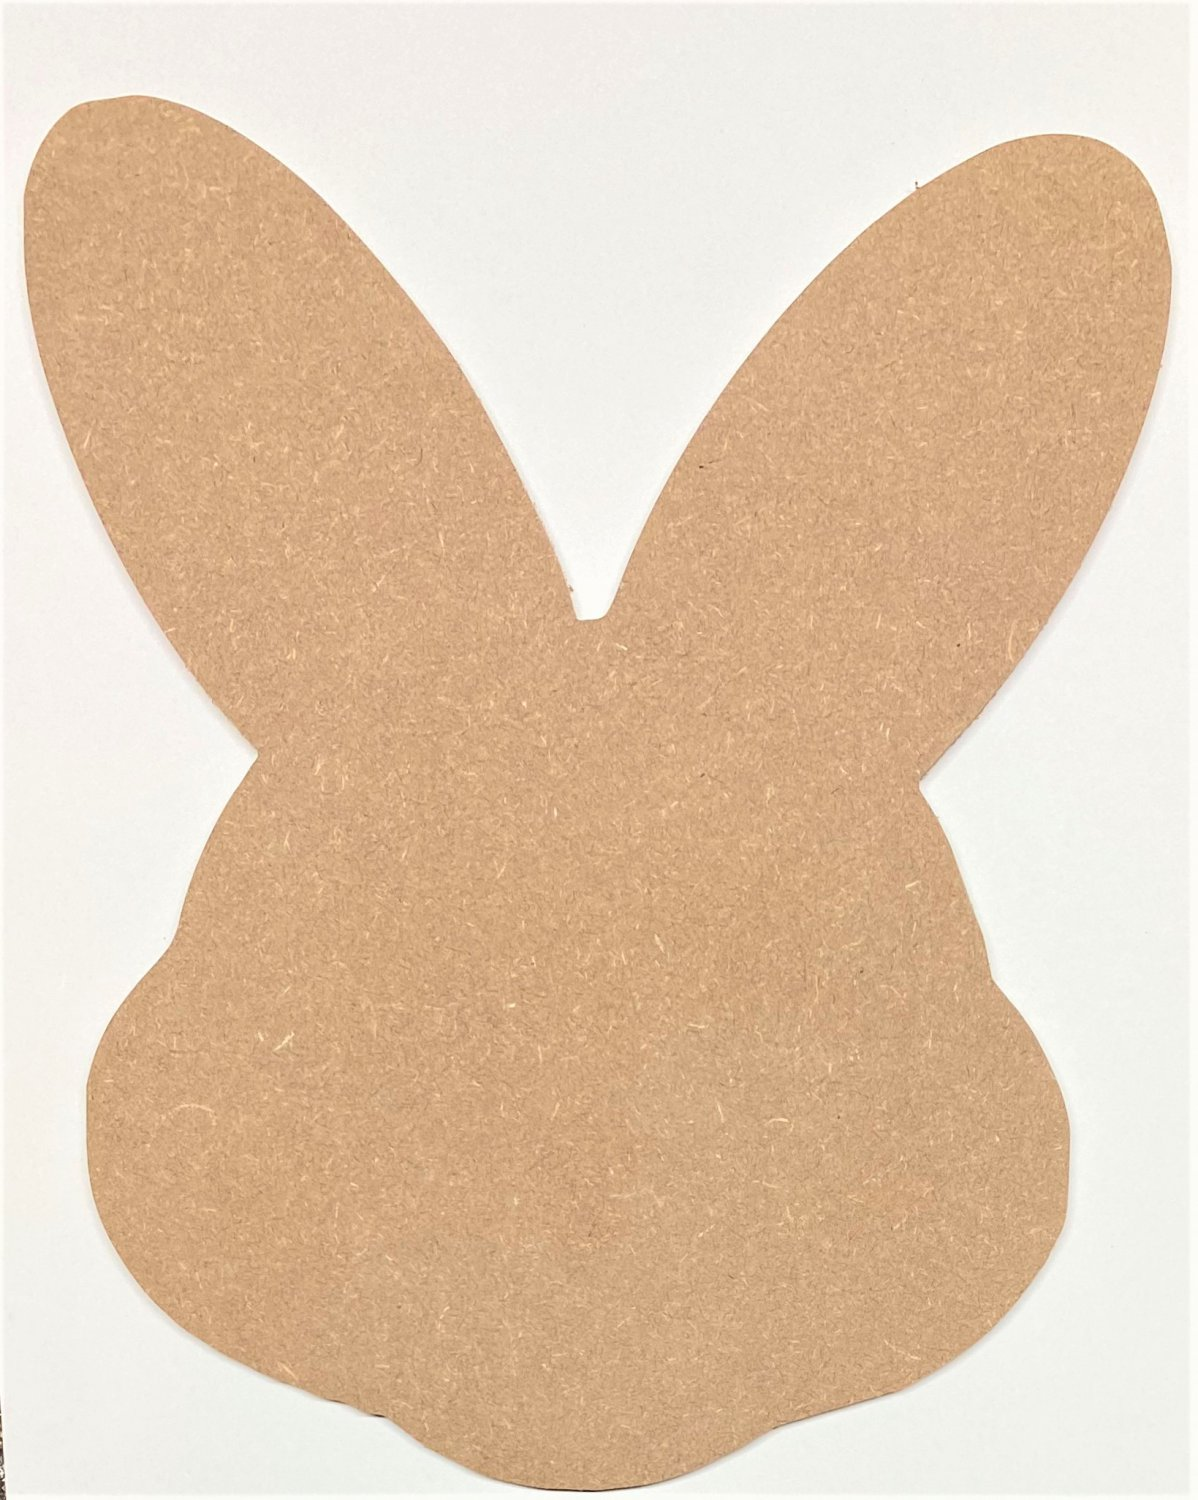 """12"""" - BUNNY HEAD - 1/4""""Thick MDF Cut Out Made in the USA"""